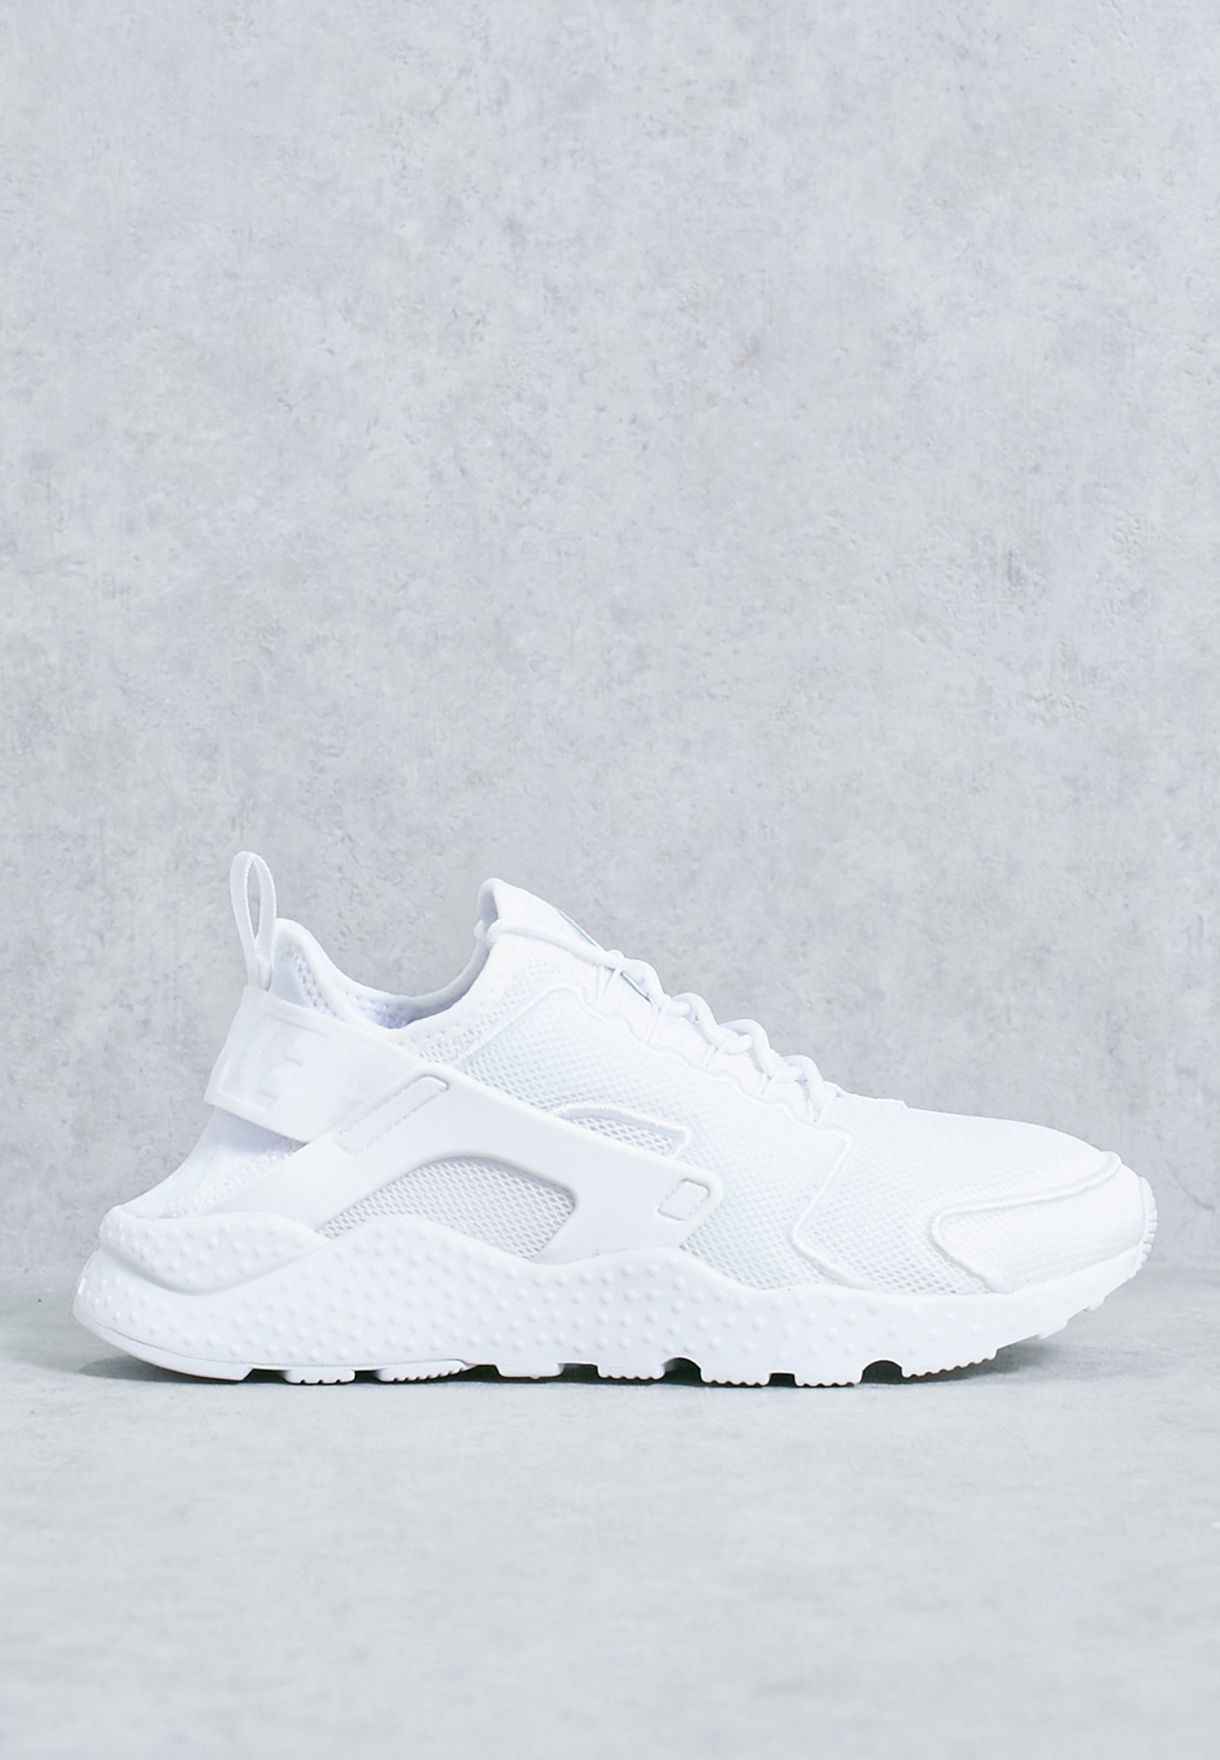 huge selection of 9c4f7 bea97 Air Huarache Run Ultra BR